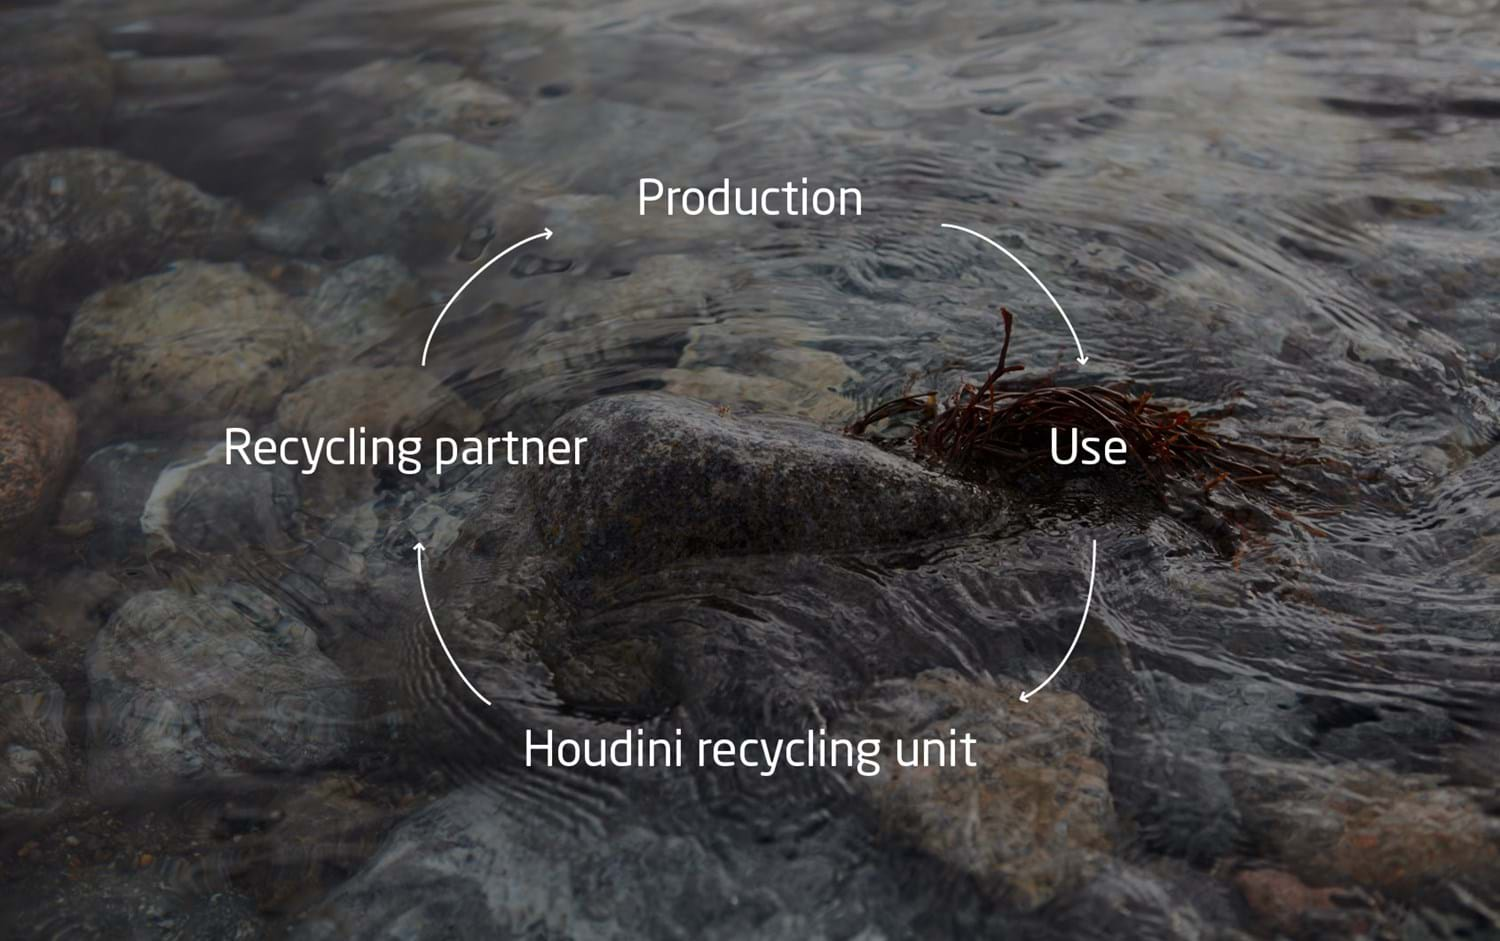 Recycling_system_image.jpg